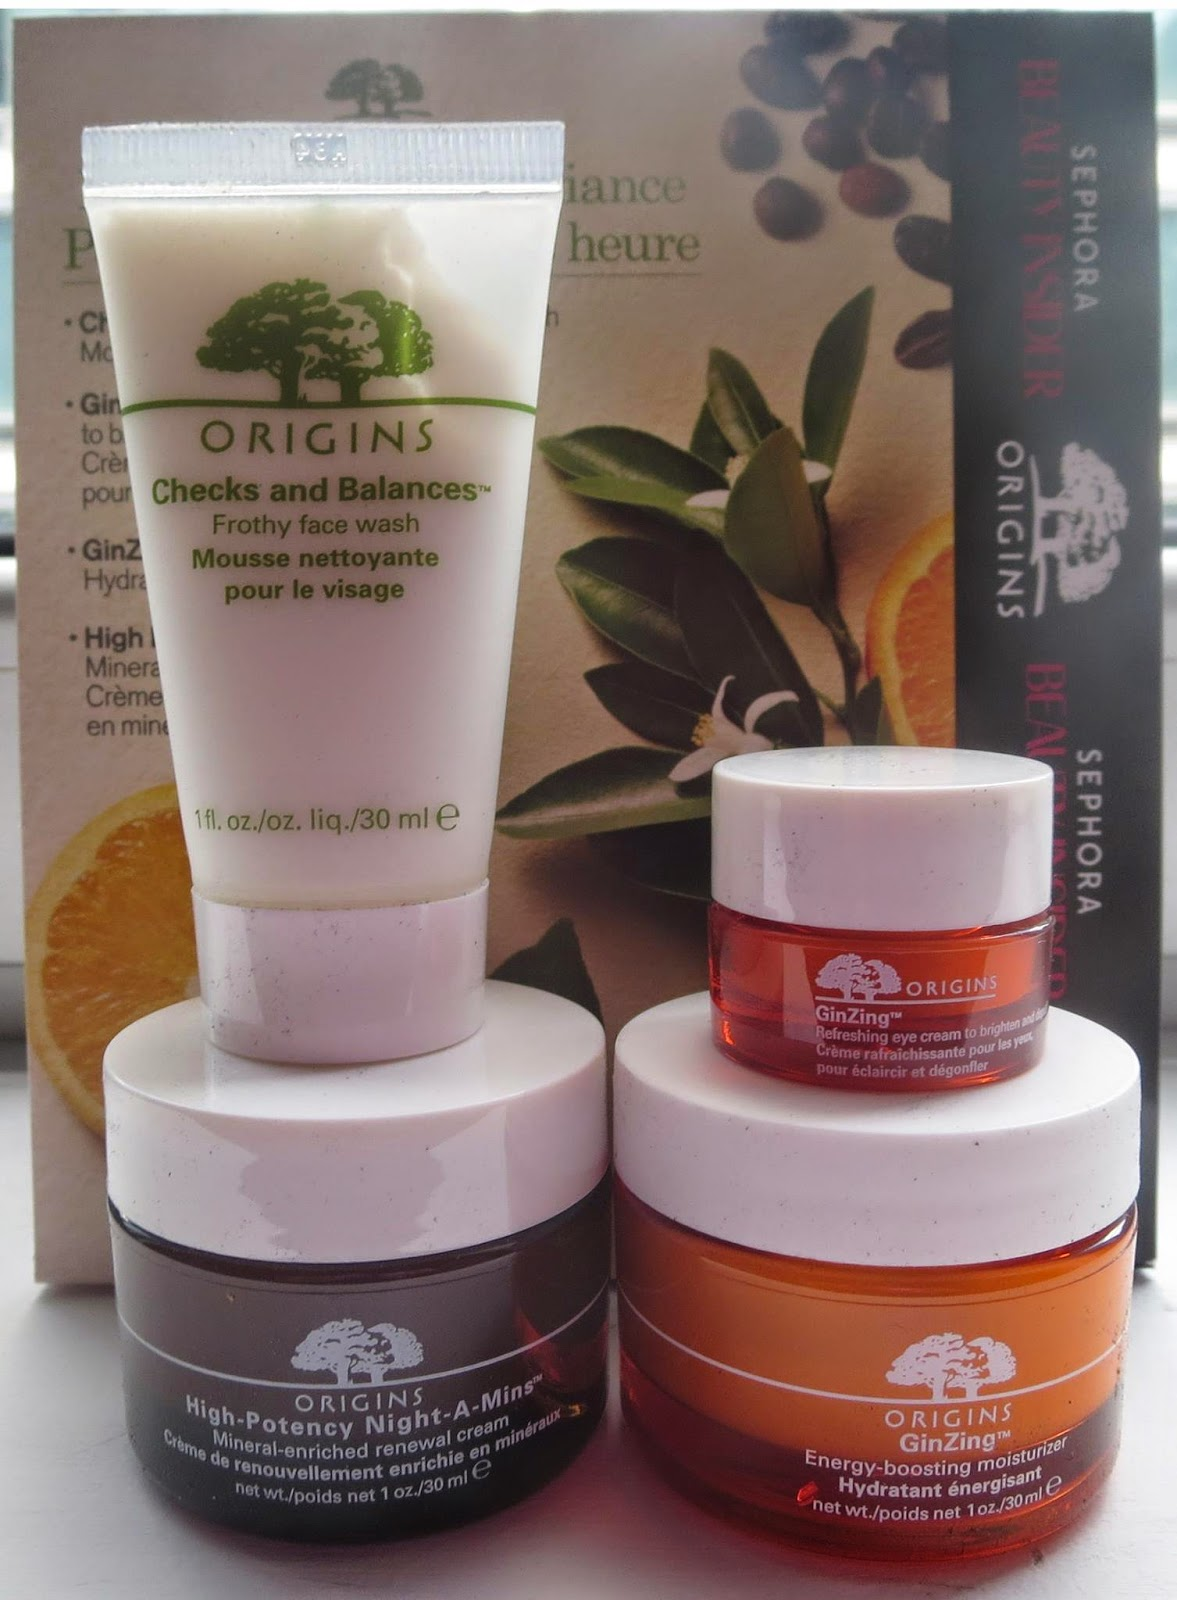 a picture of the 500 points beauty insider origins box set (checks and balances, ginzing eye cream, ginzing moisturizer, high potency night a mins cream)